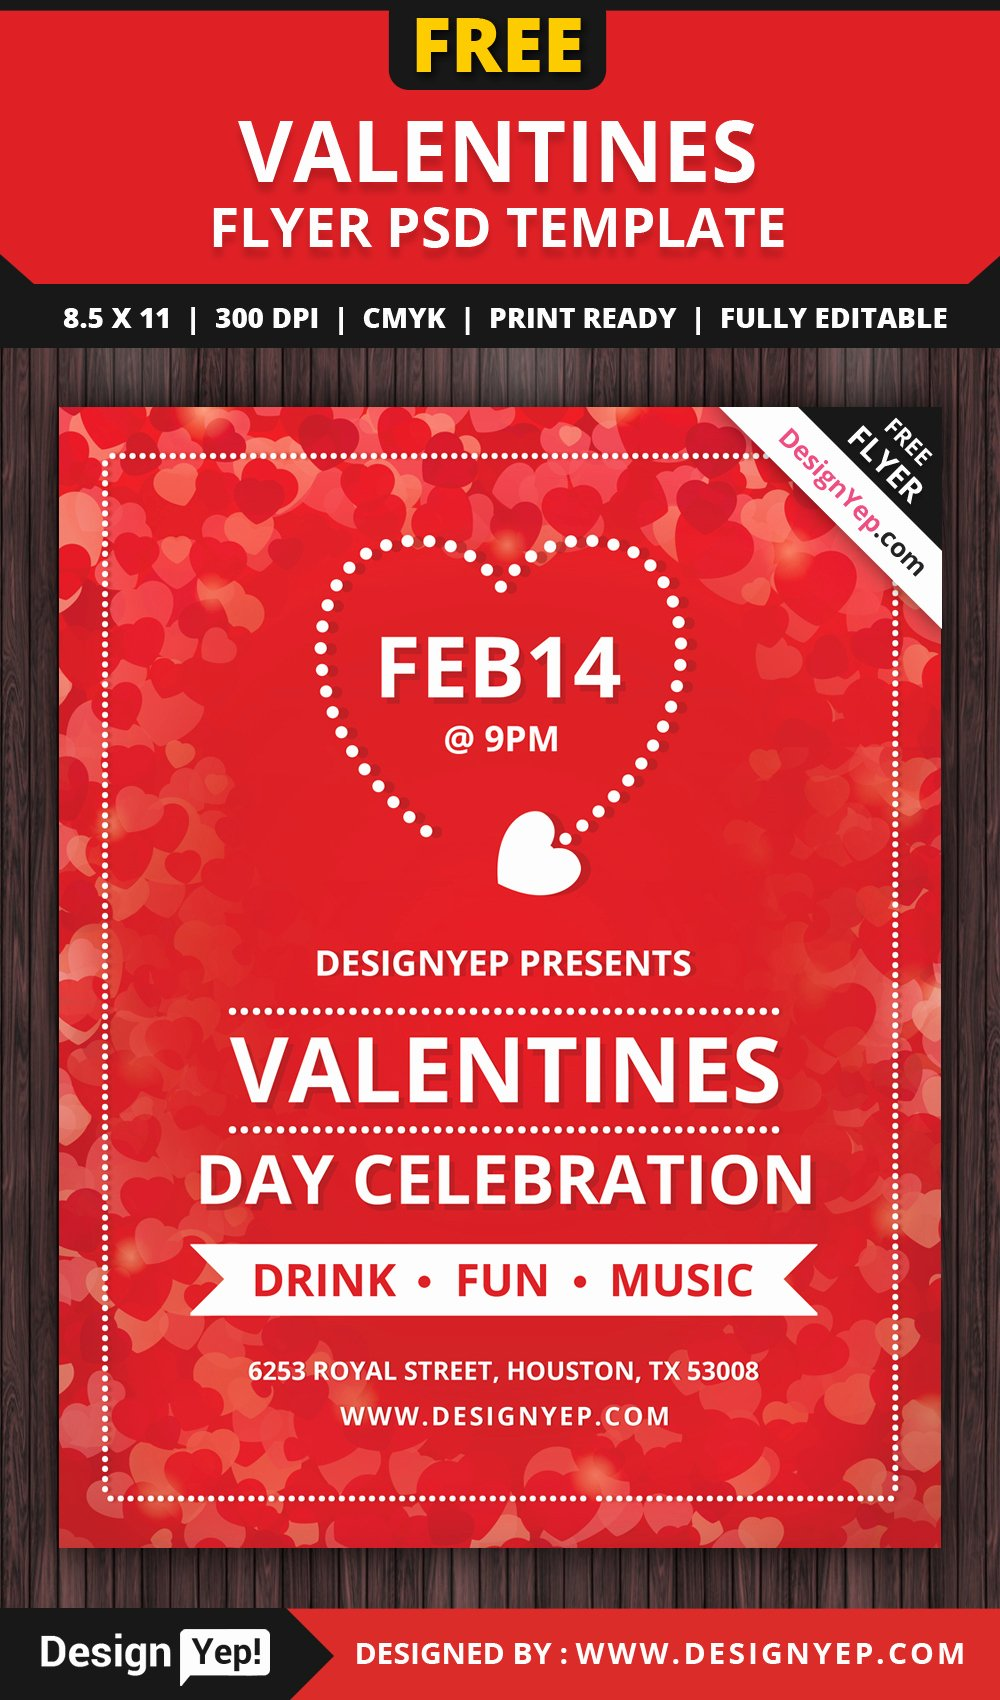 Valentines Flyer Templates Free Unique Valentines Day Flyer Free Psd Template Designyep